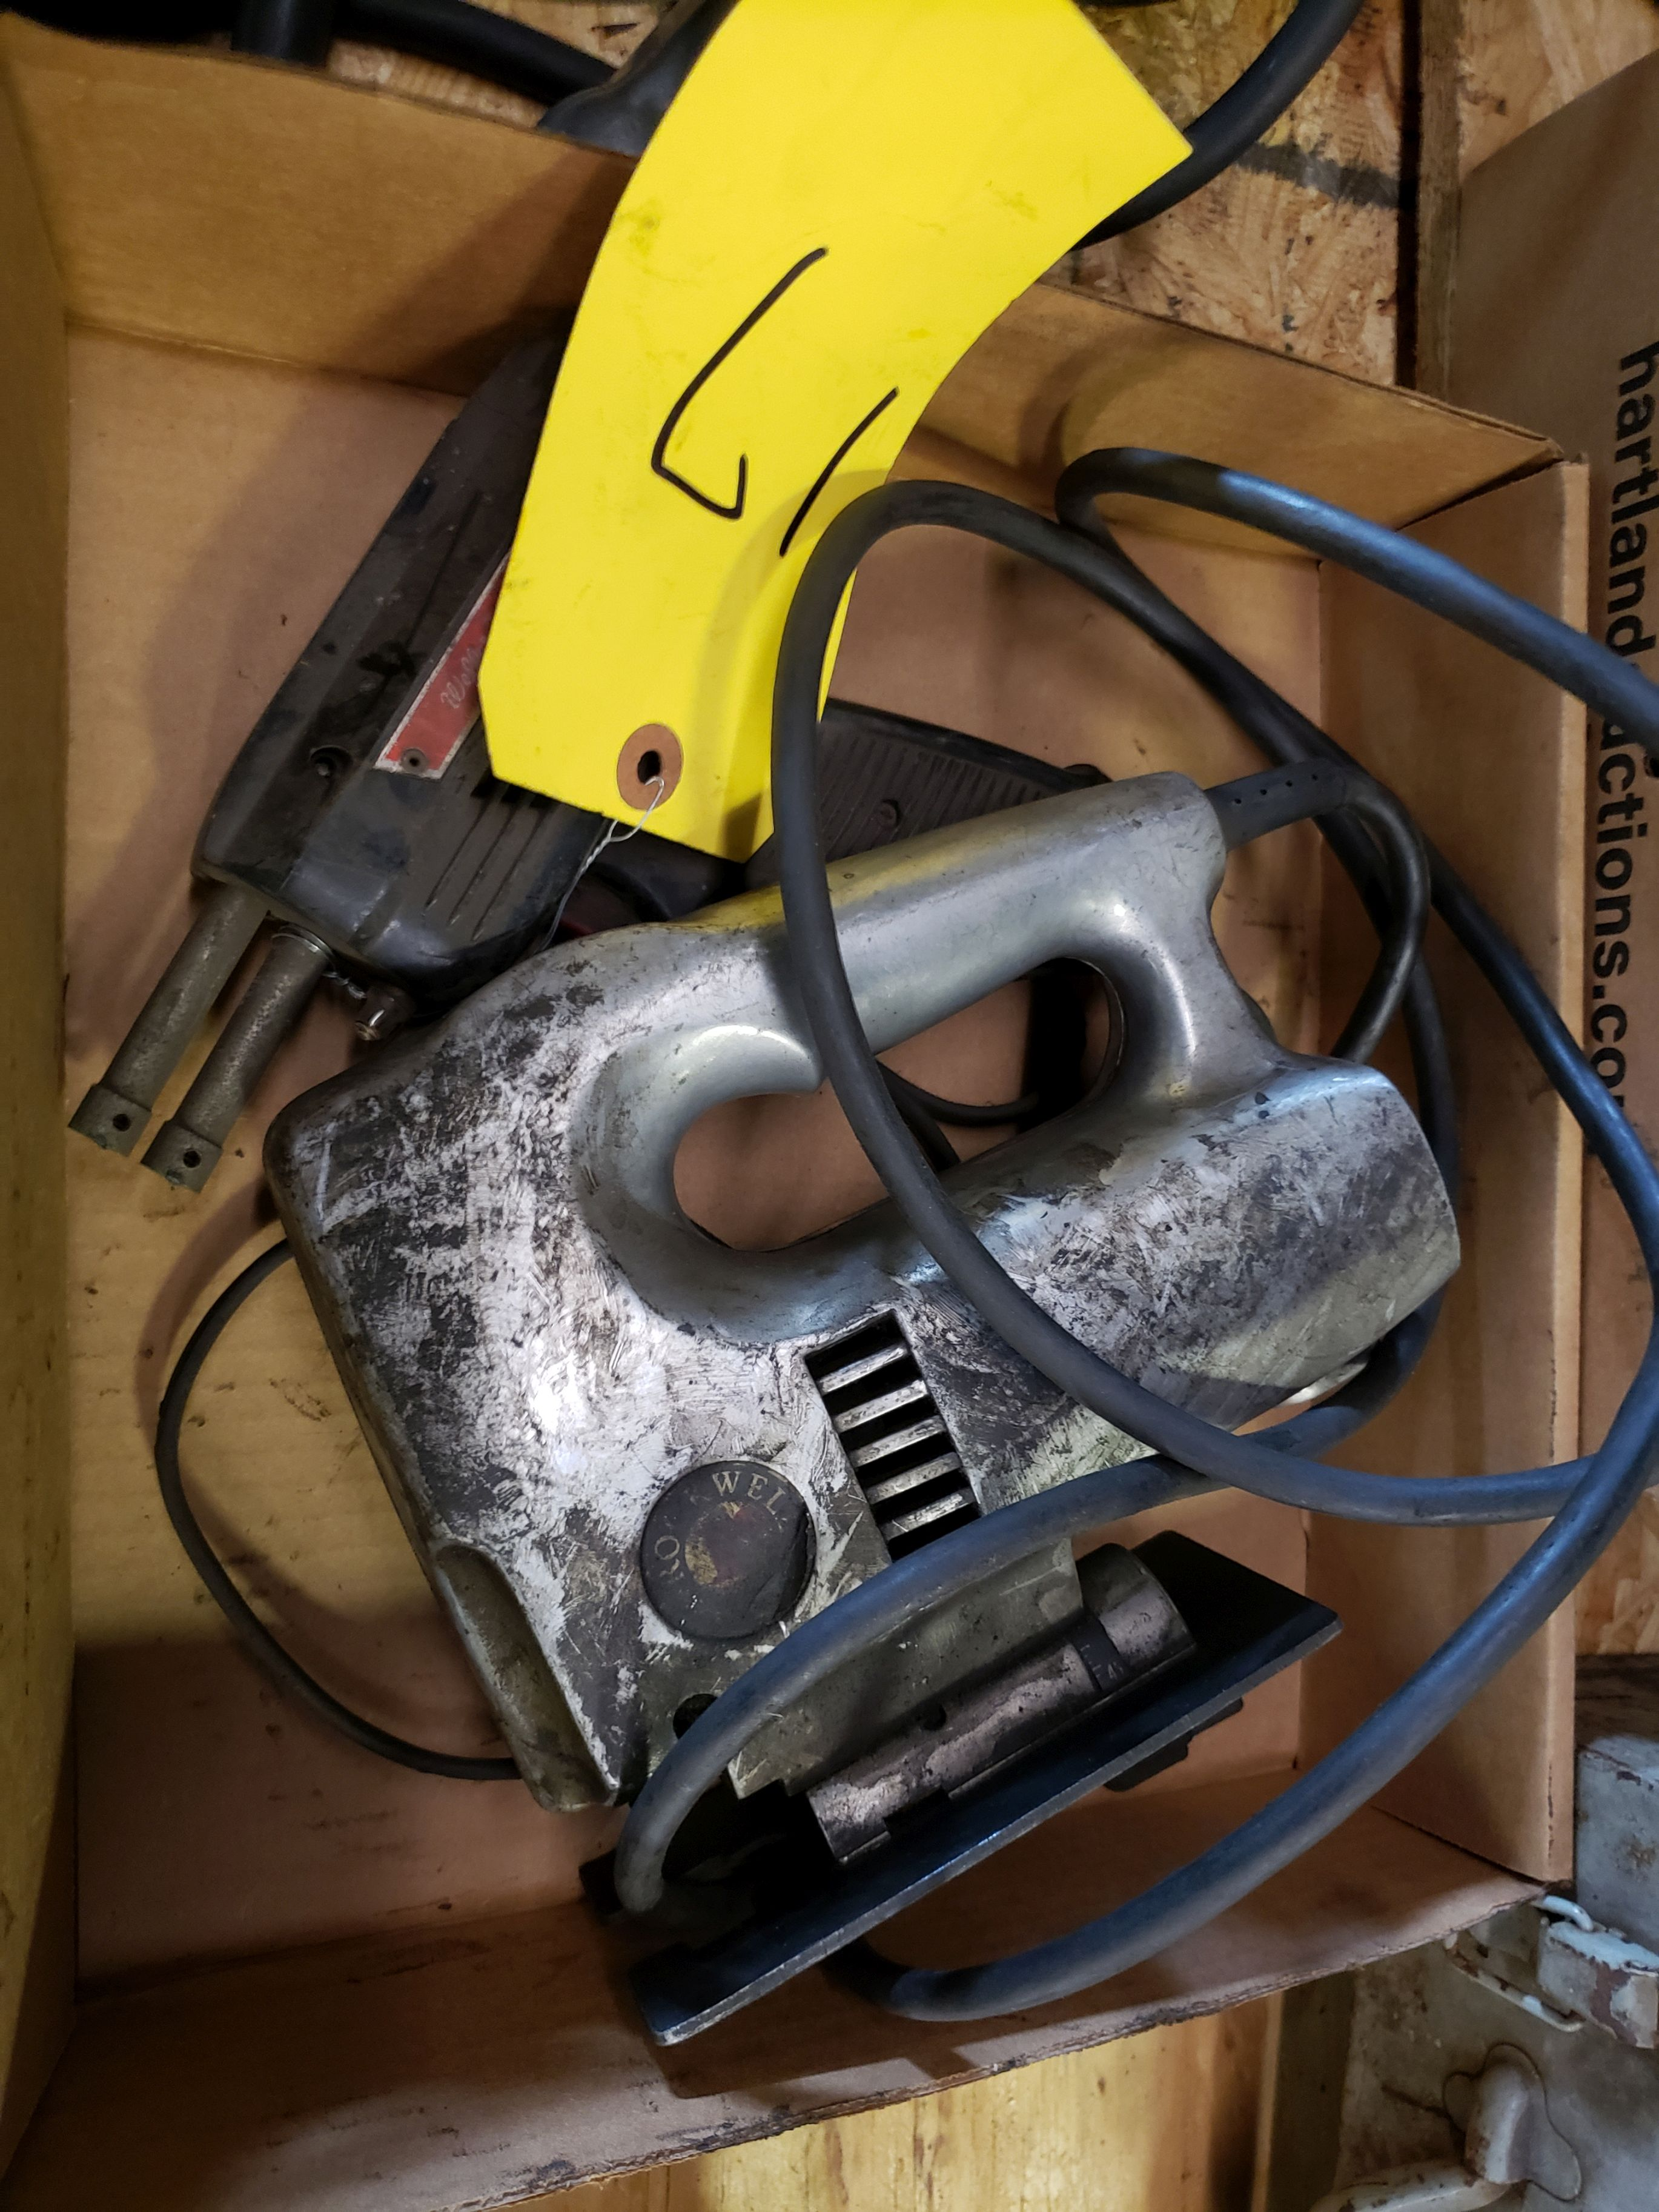 Lot 17 - SOLDERING IRON AND JIG SAW